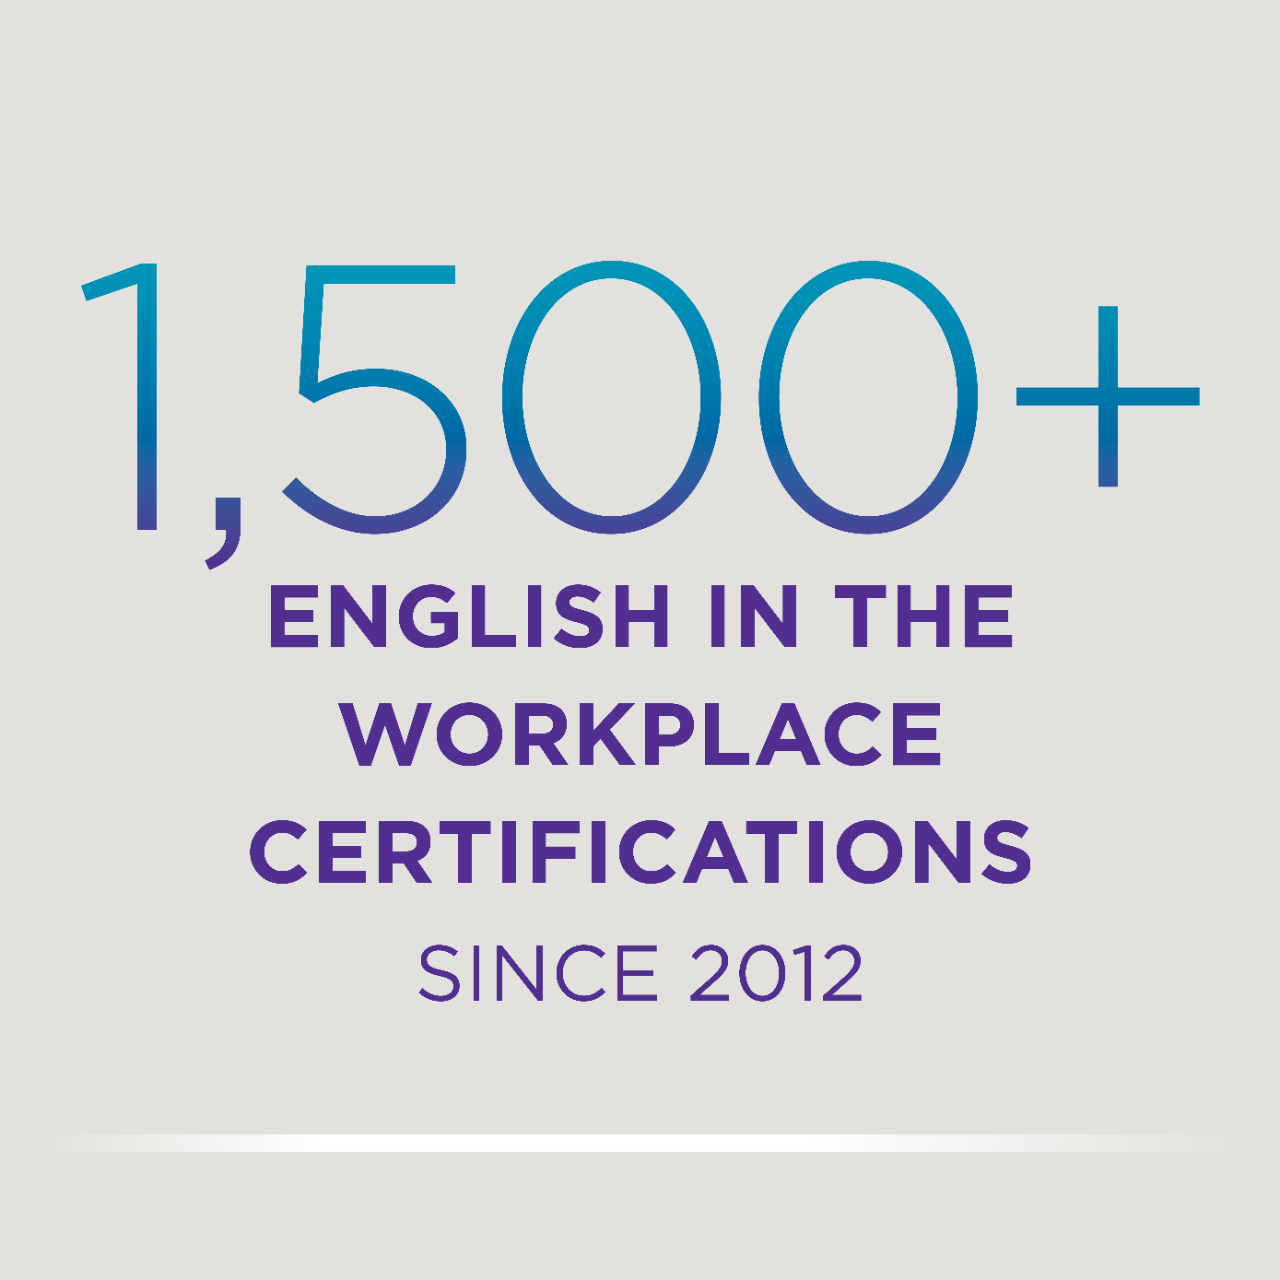 1,500+ English in the Workplace certifications since 2012